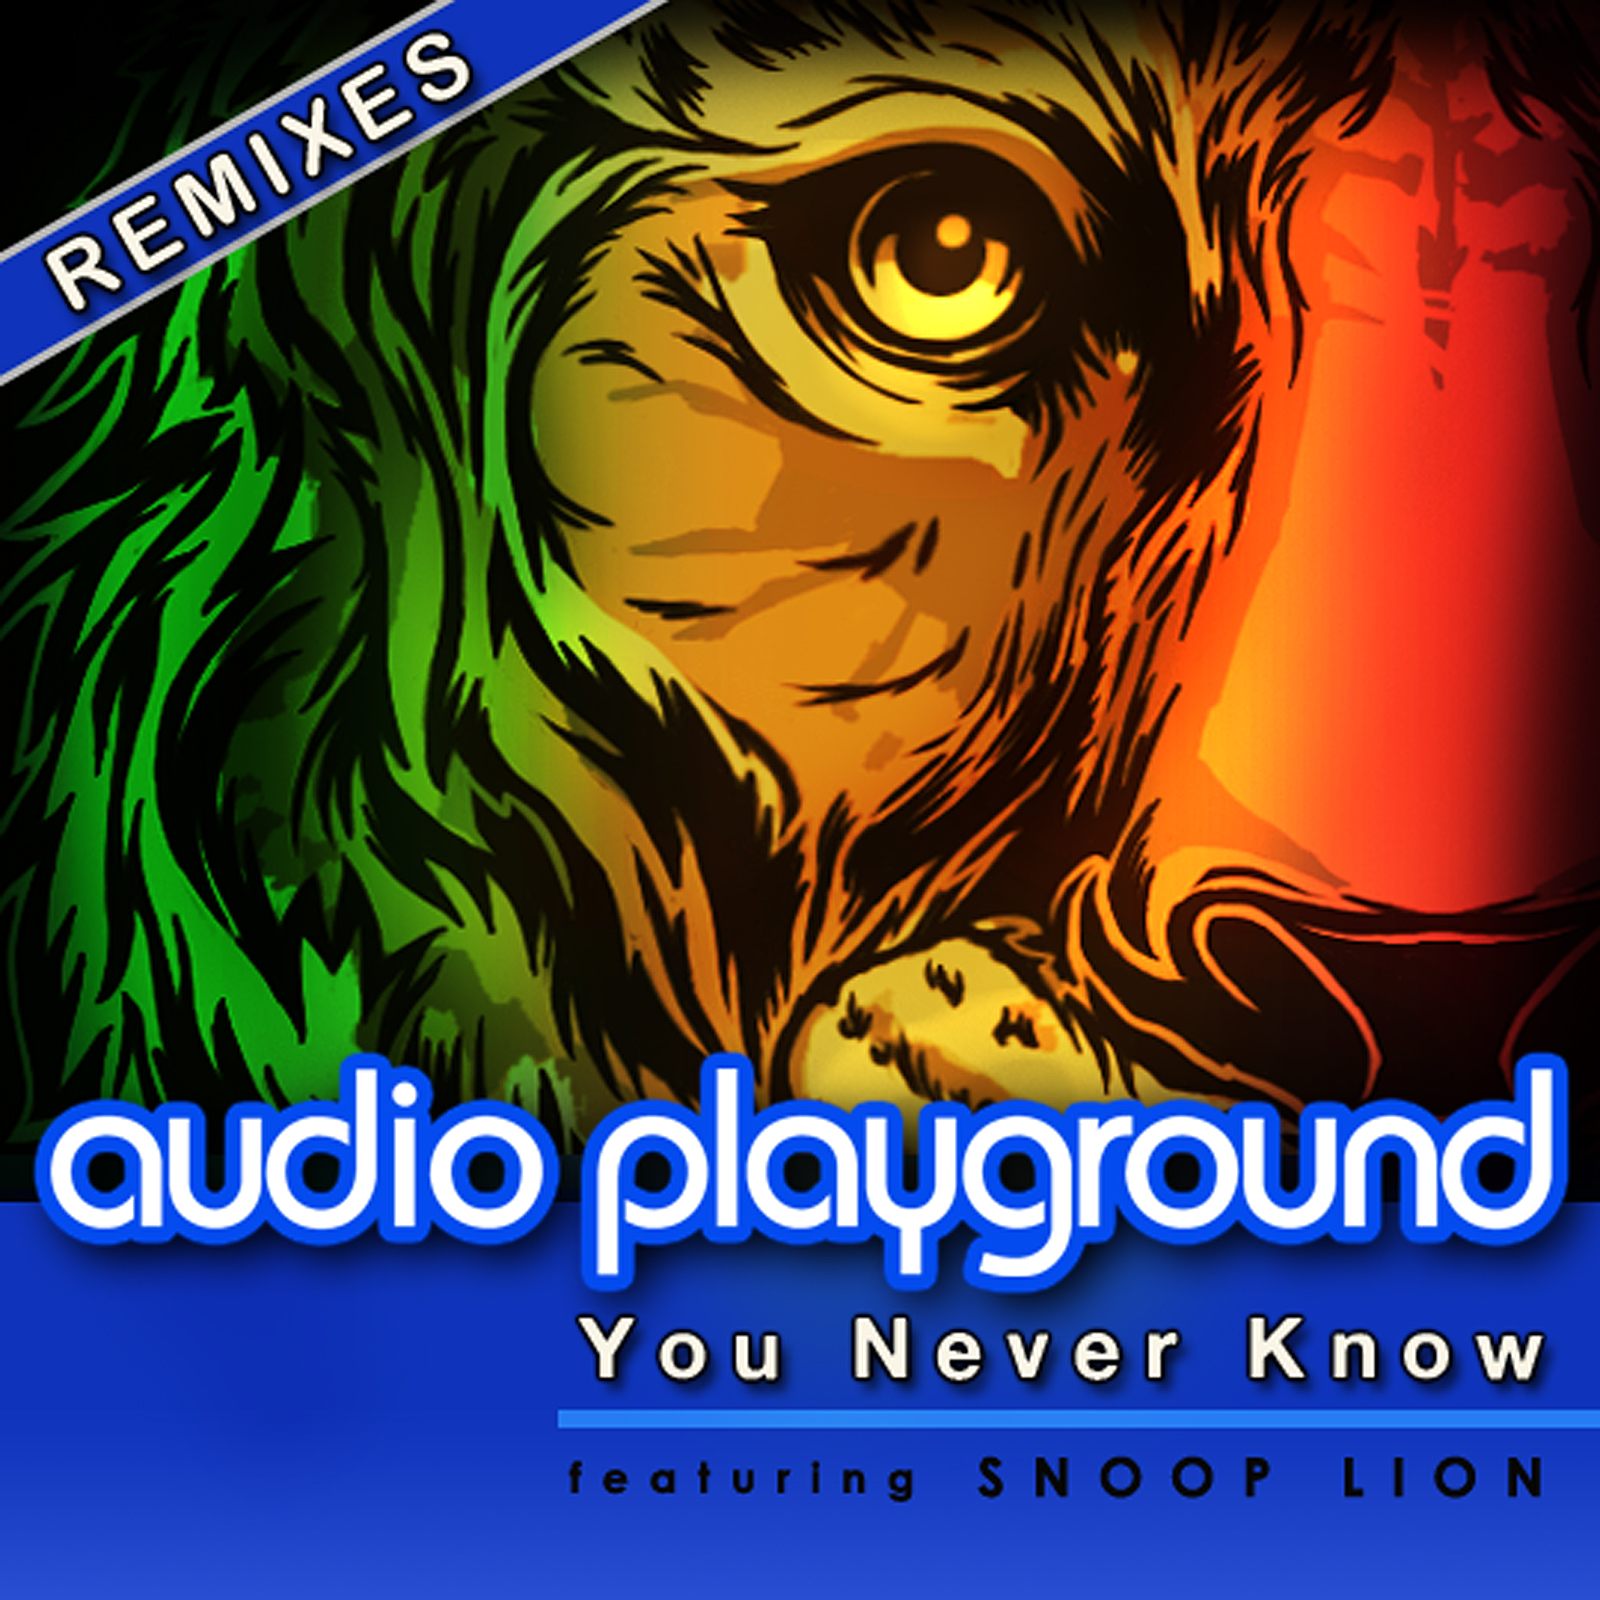 audio playground - you never know